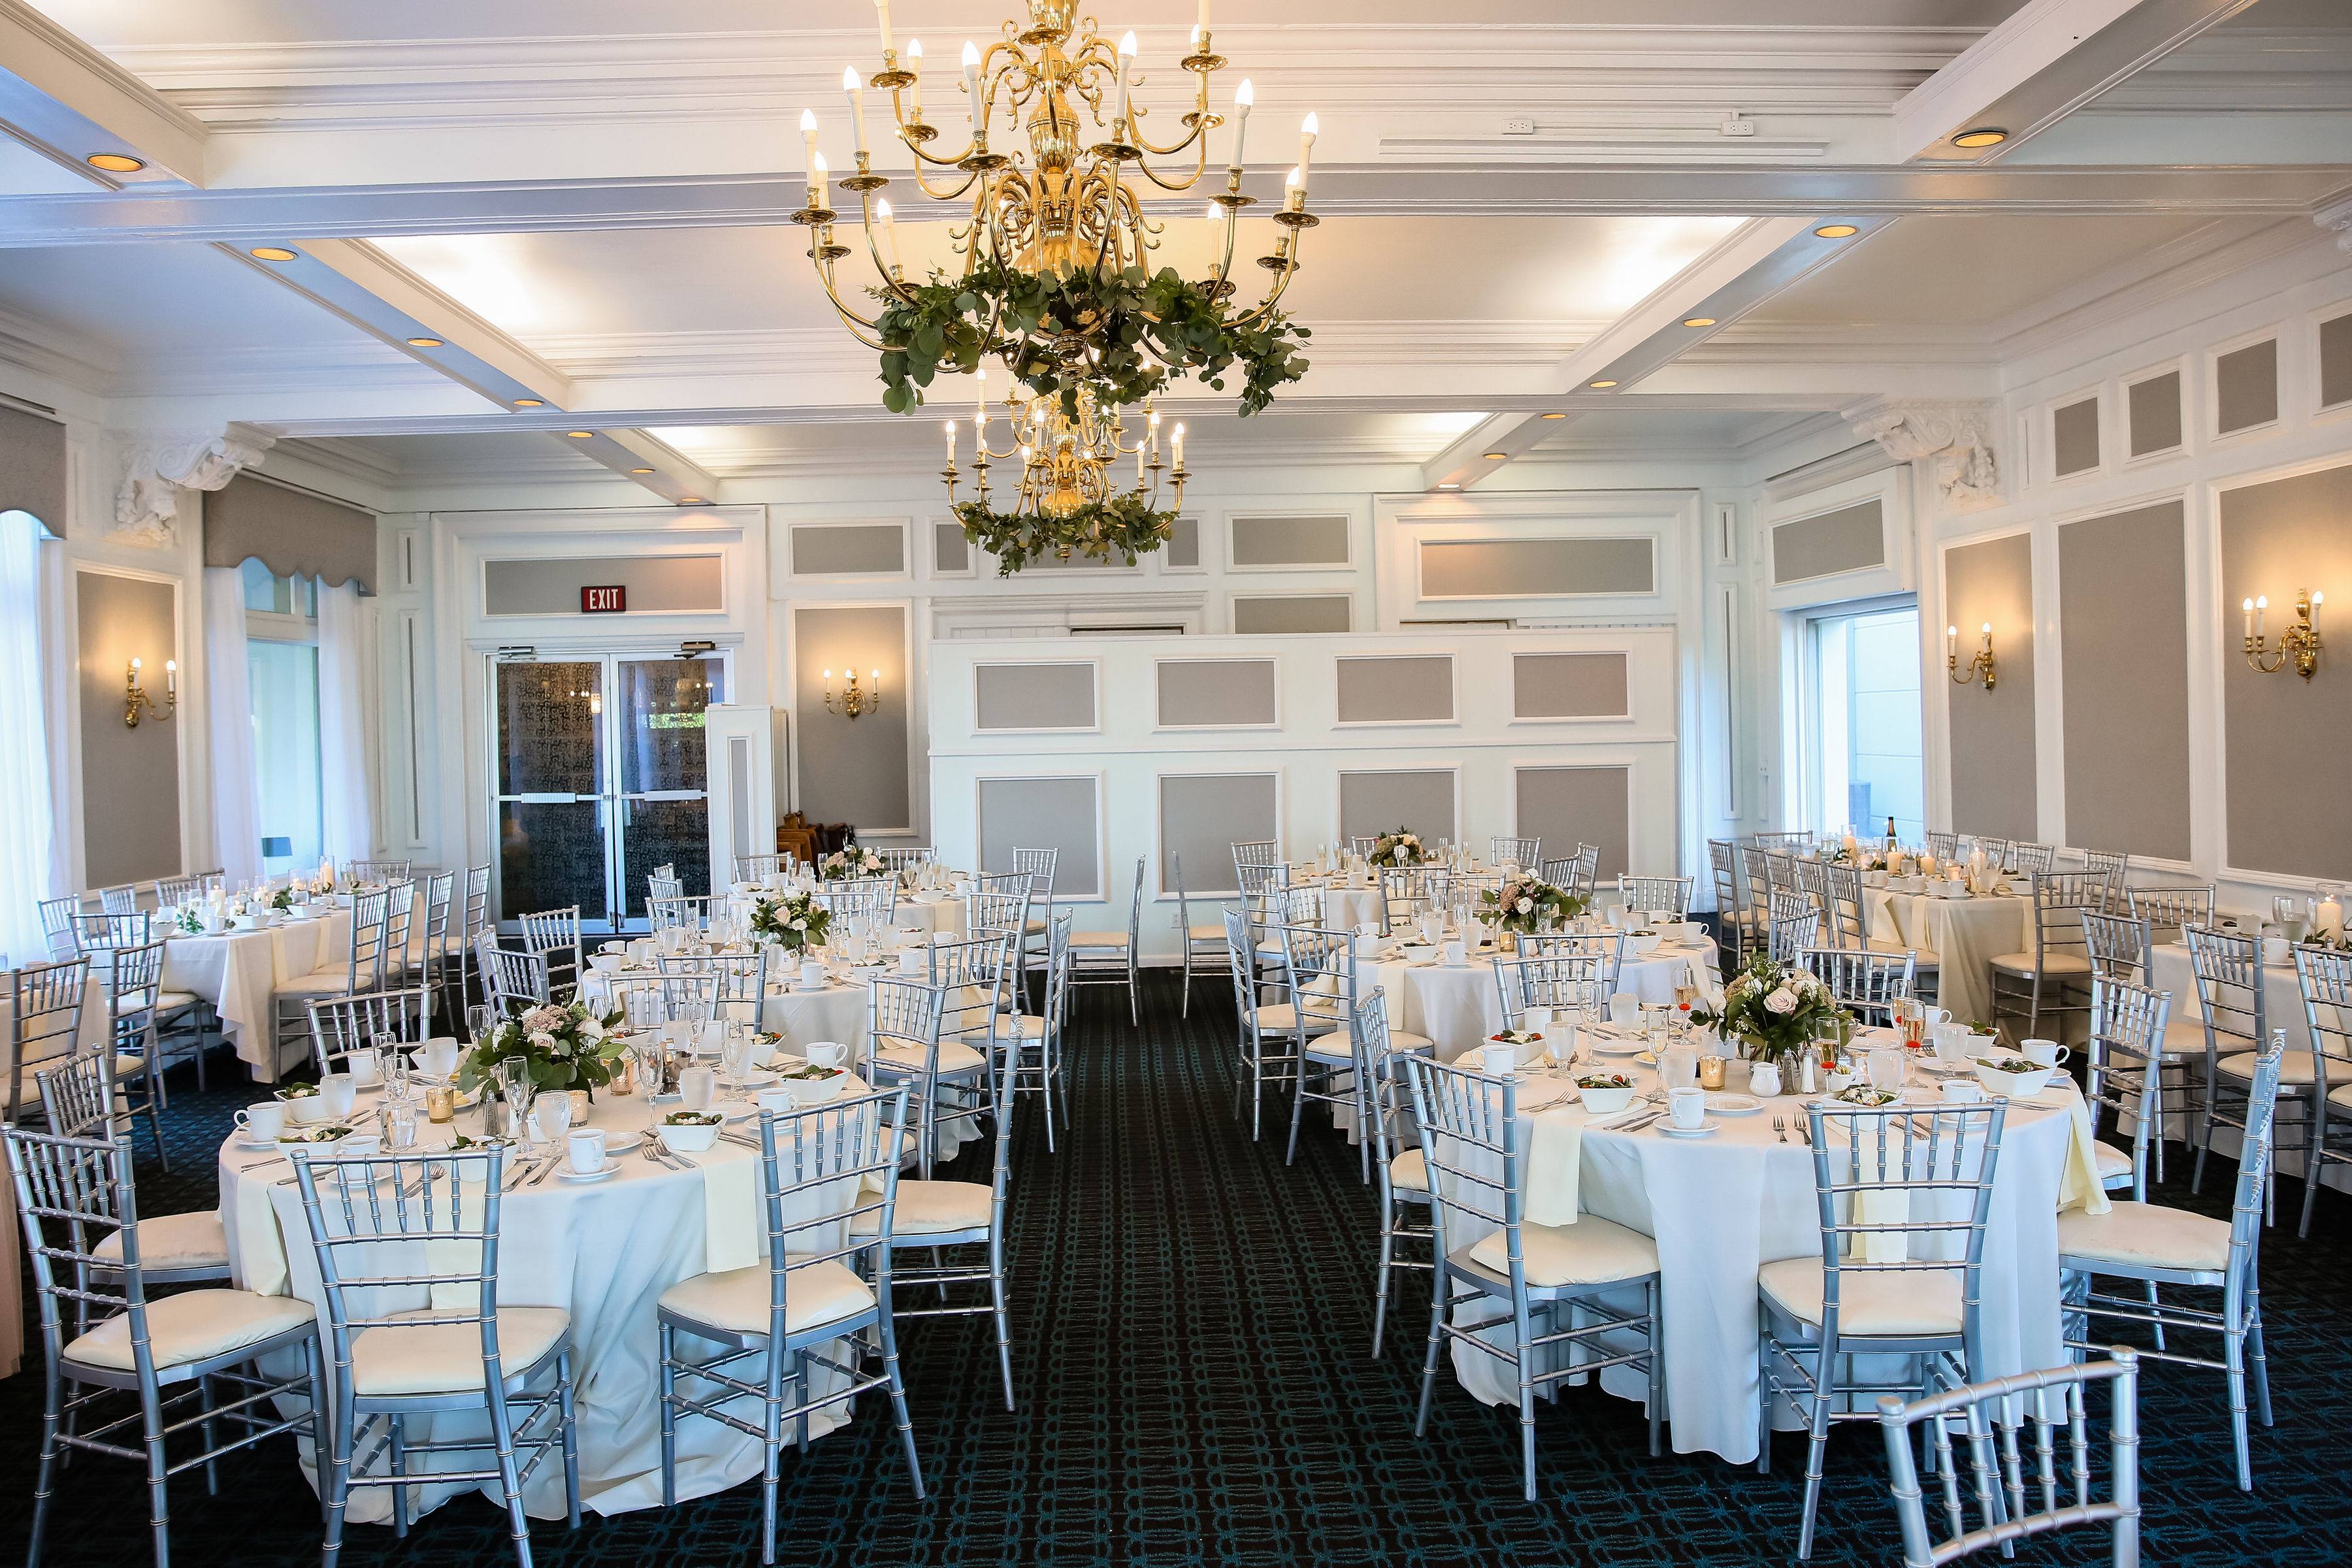 White Lion Room with gold chandeliers and Greenery. Round tables set with dining wear and flowers and white linens